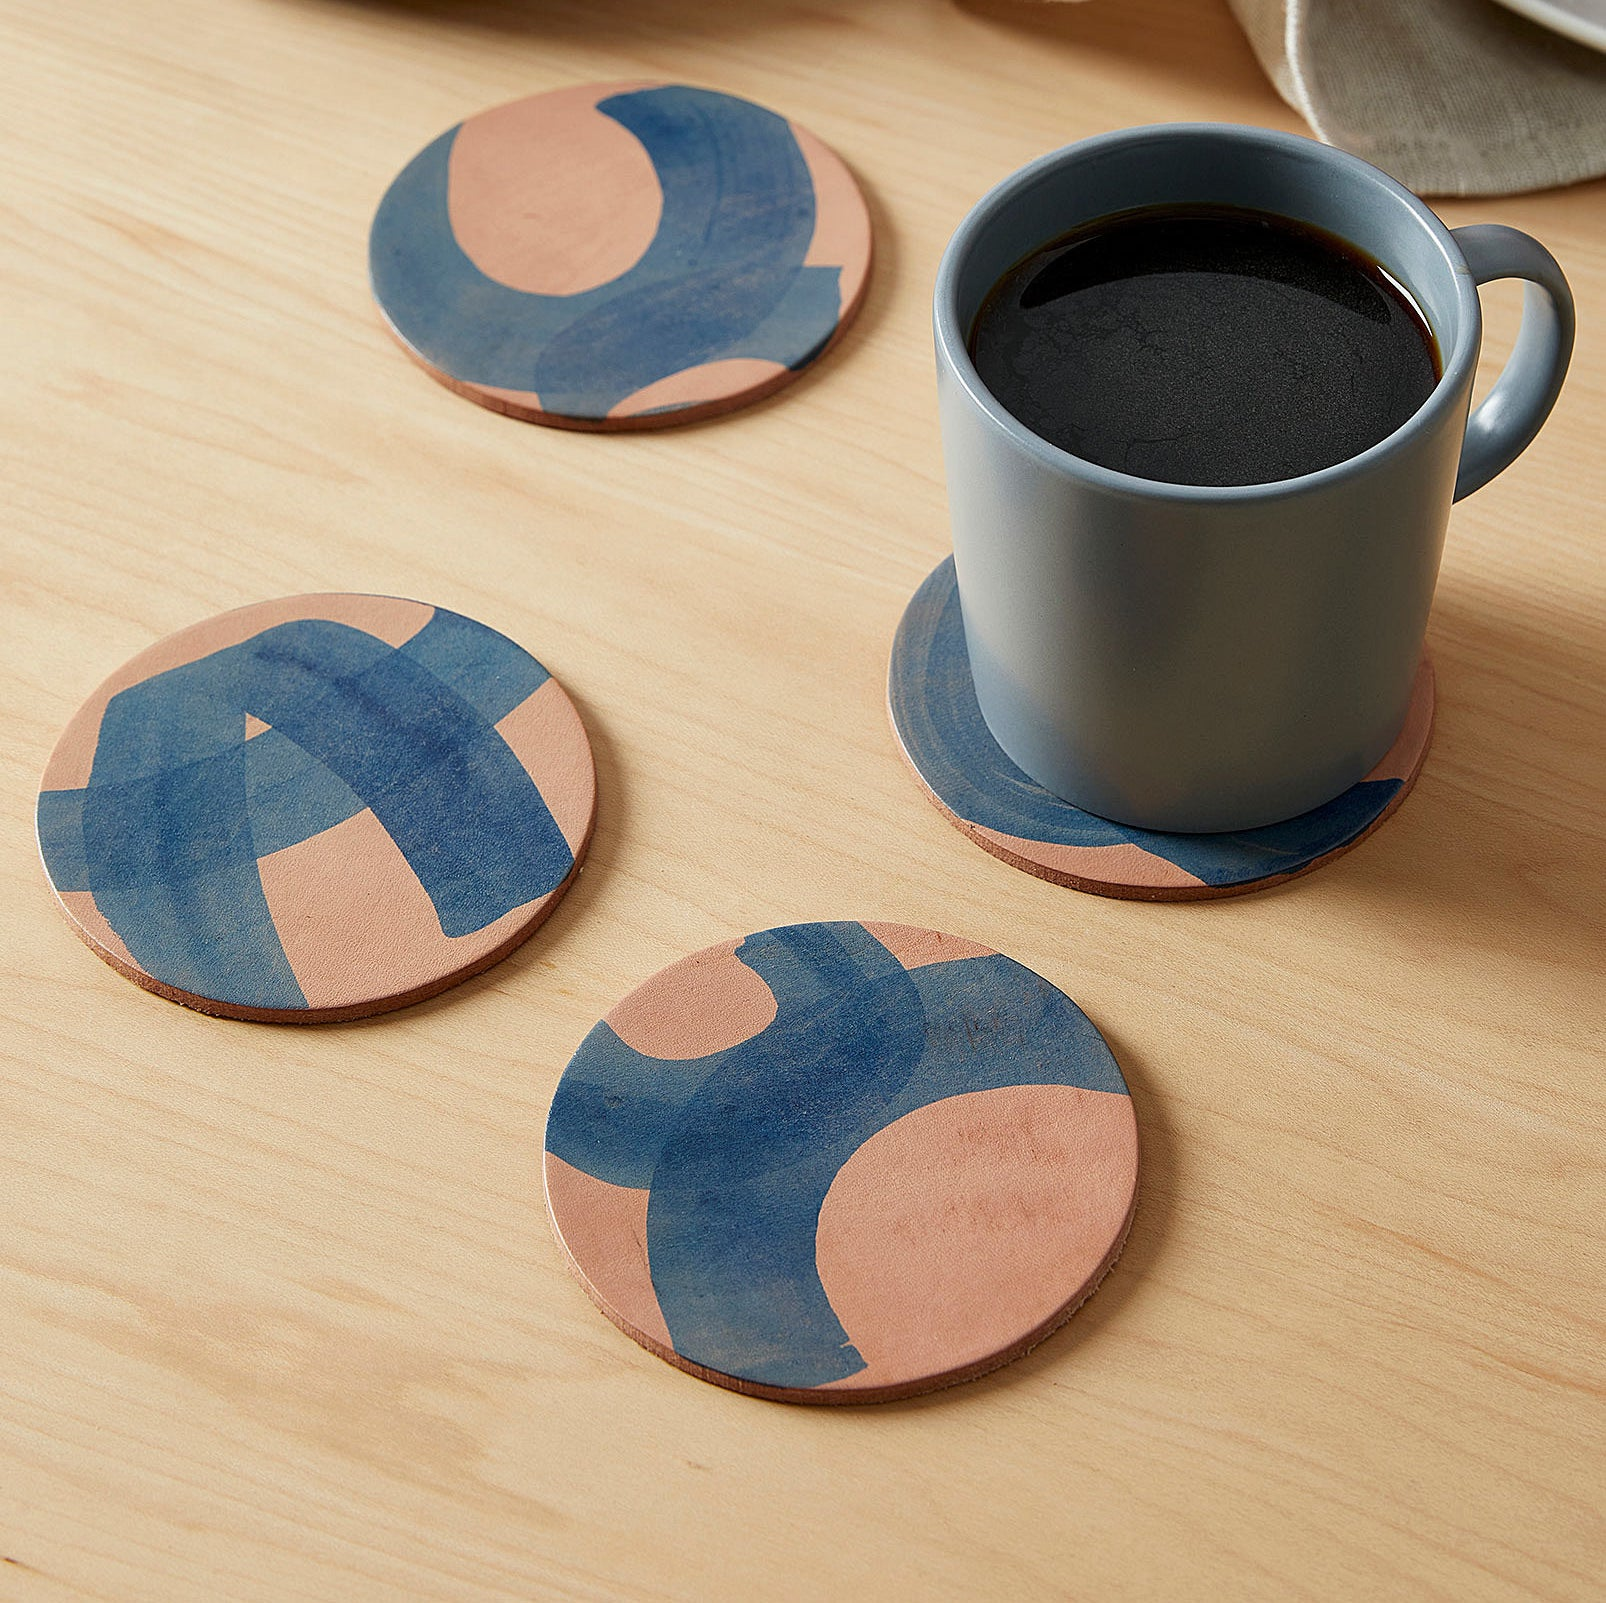 Four coasters with a cup of coffee on one of them